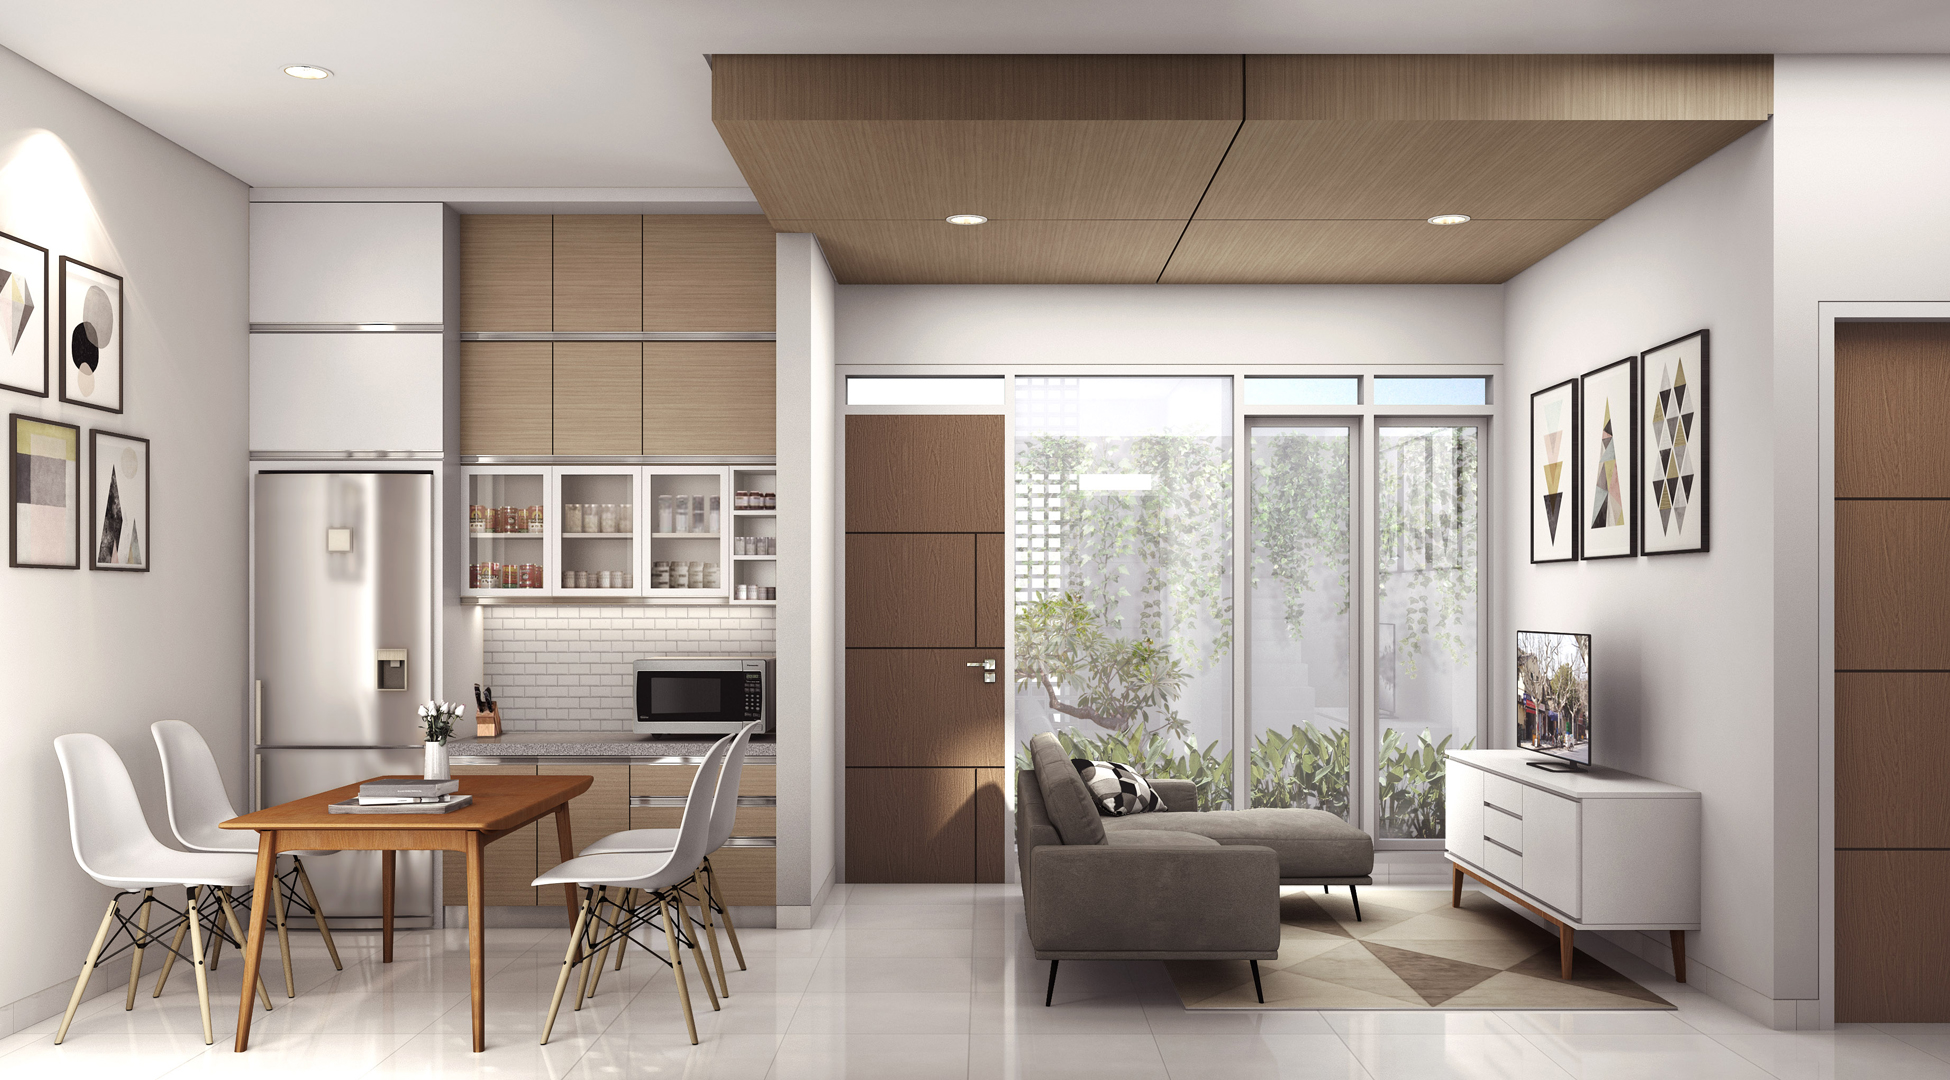 2019-GS-RESIDENCE-003